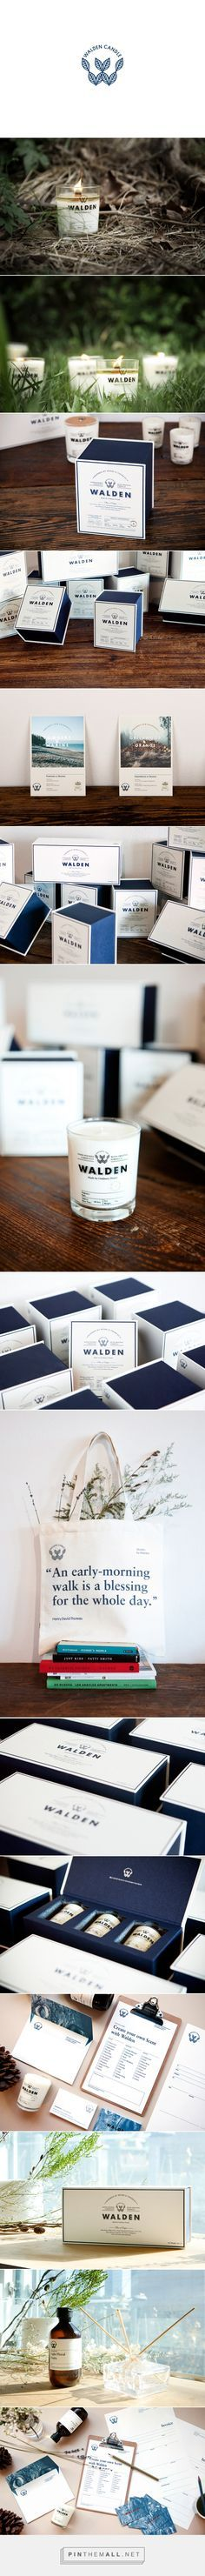 WALDEN on Behance | Fivestar Branding – Design and Branding Agency & Inspiration Gallery